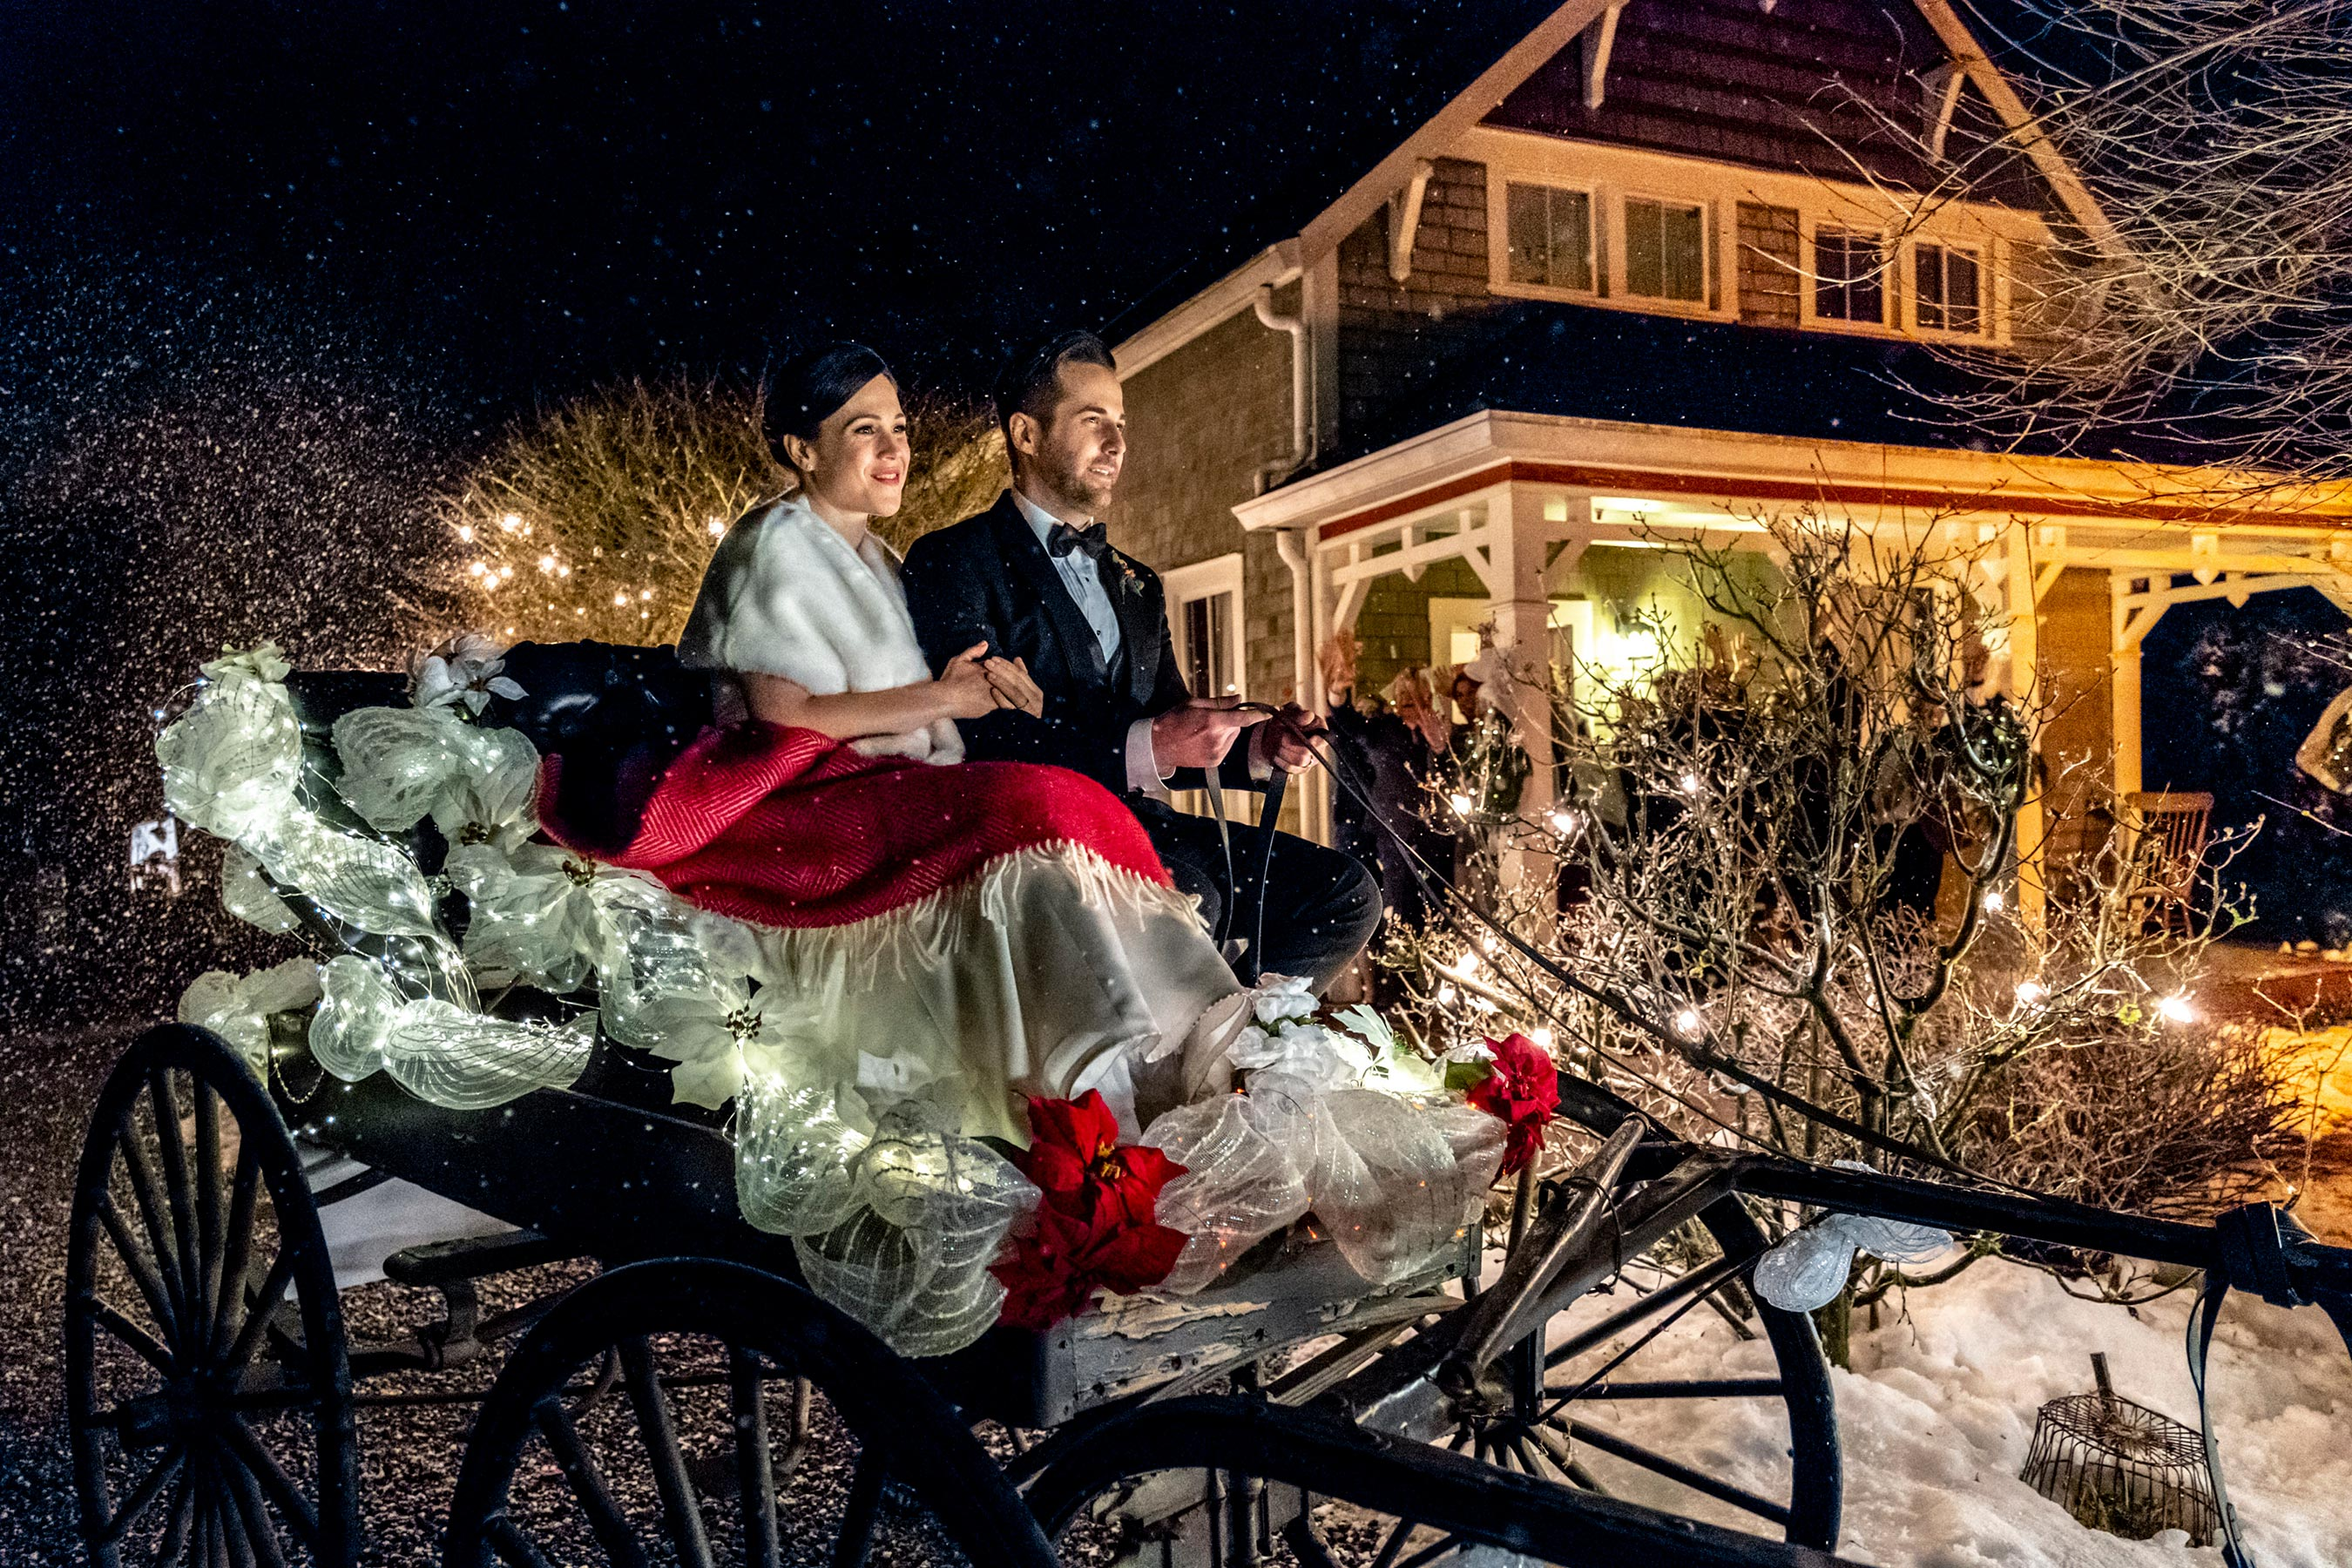 2018 Hallmark Movies Marrying Father Christmas